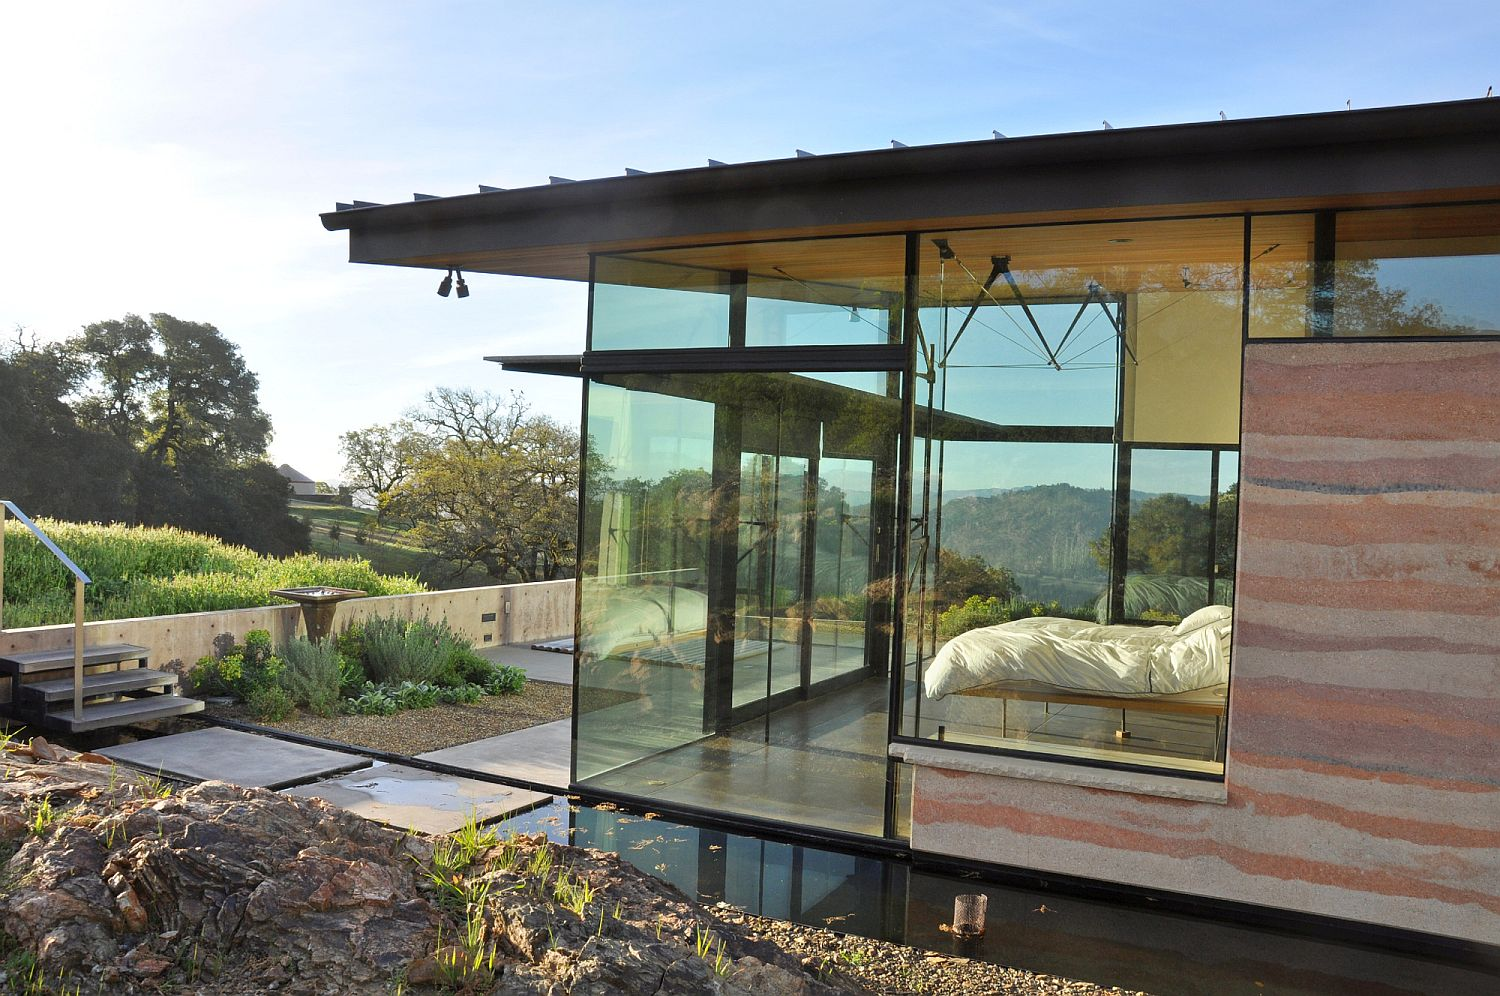 Bedroom with glass walls flows into the patio outside